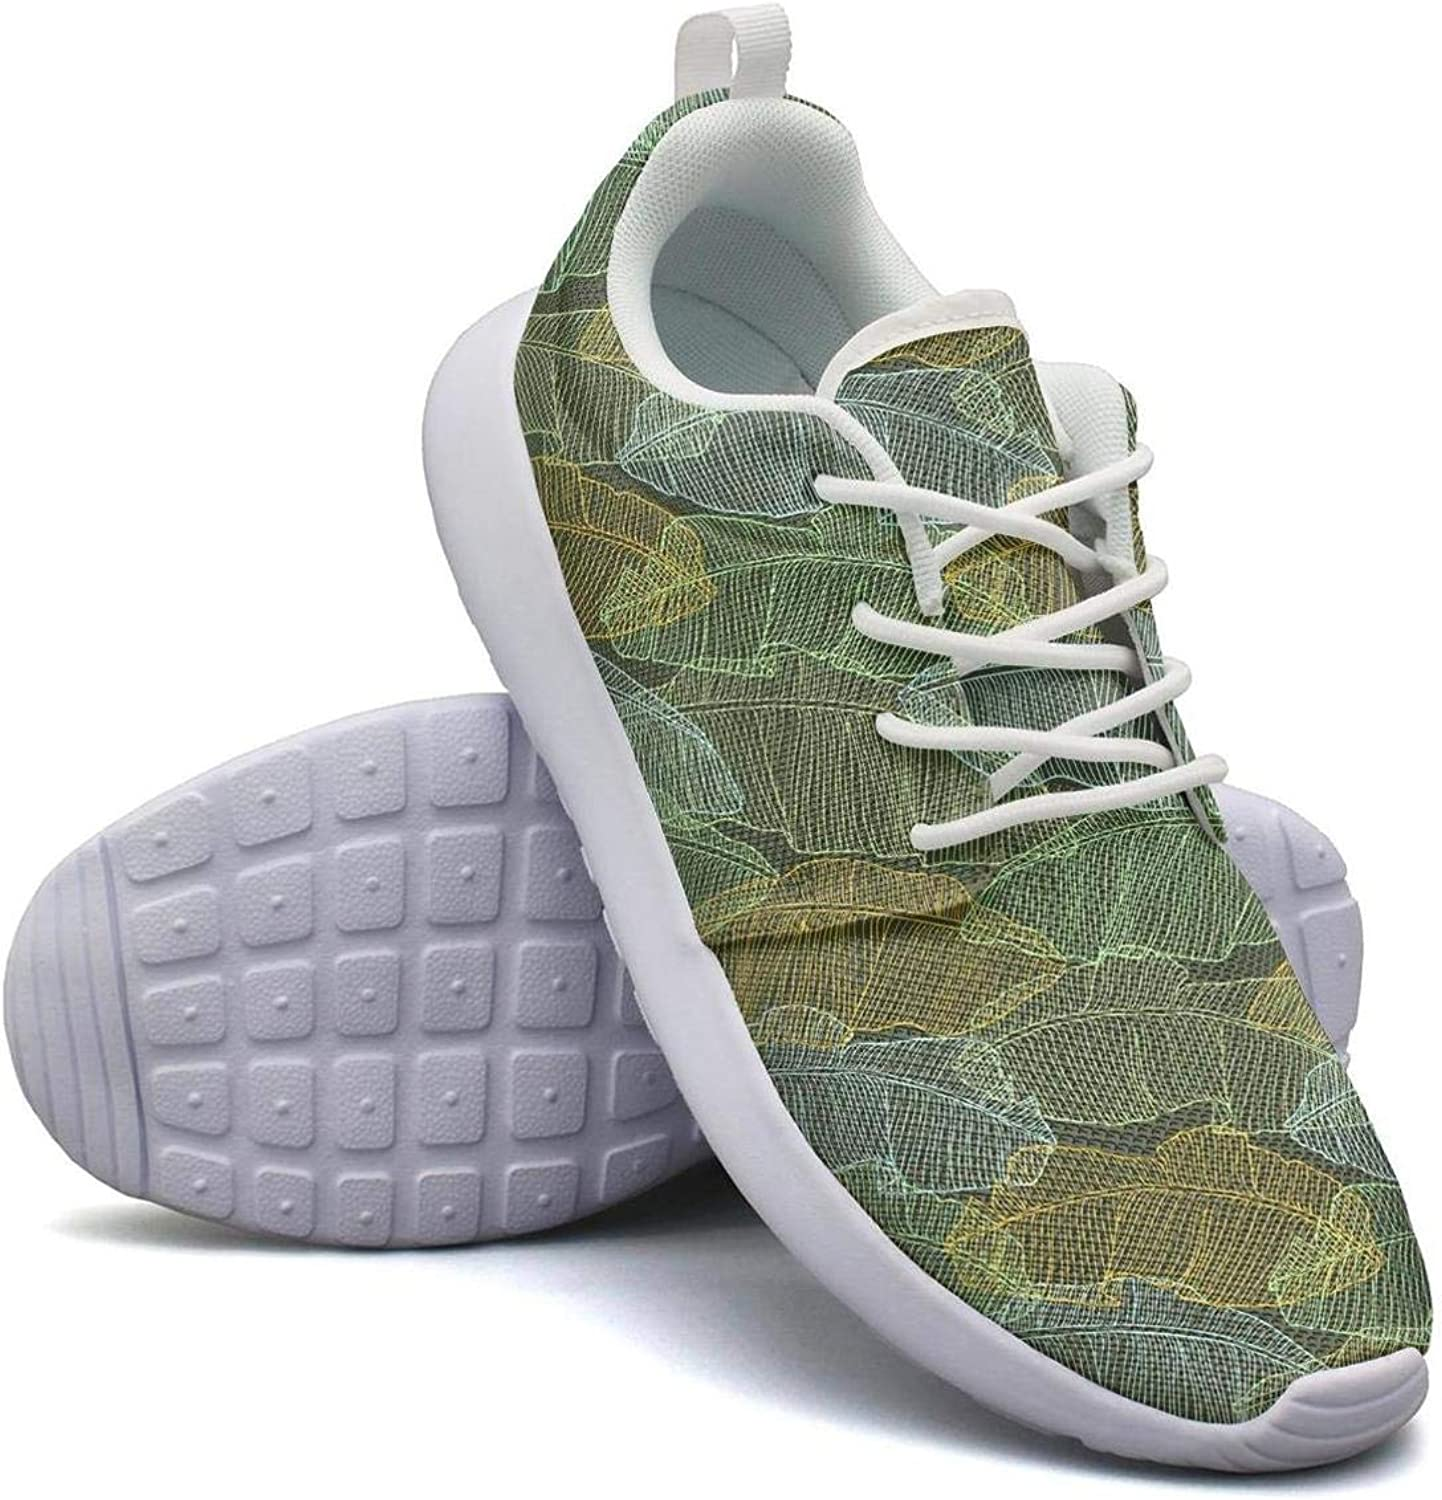 CHALi99 Breathable Womens Lightweight Mesh shoes Palm Tree with Coconuts Sneakers Walking Shock Absorbing